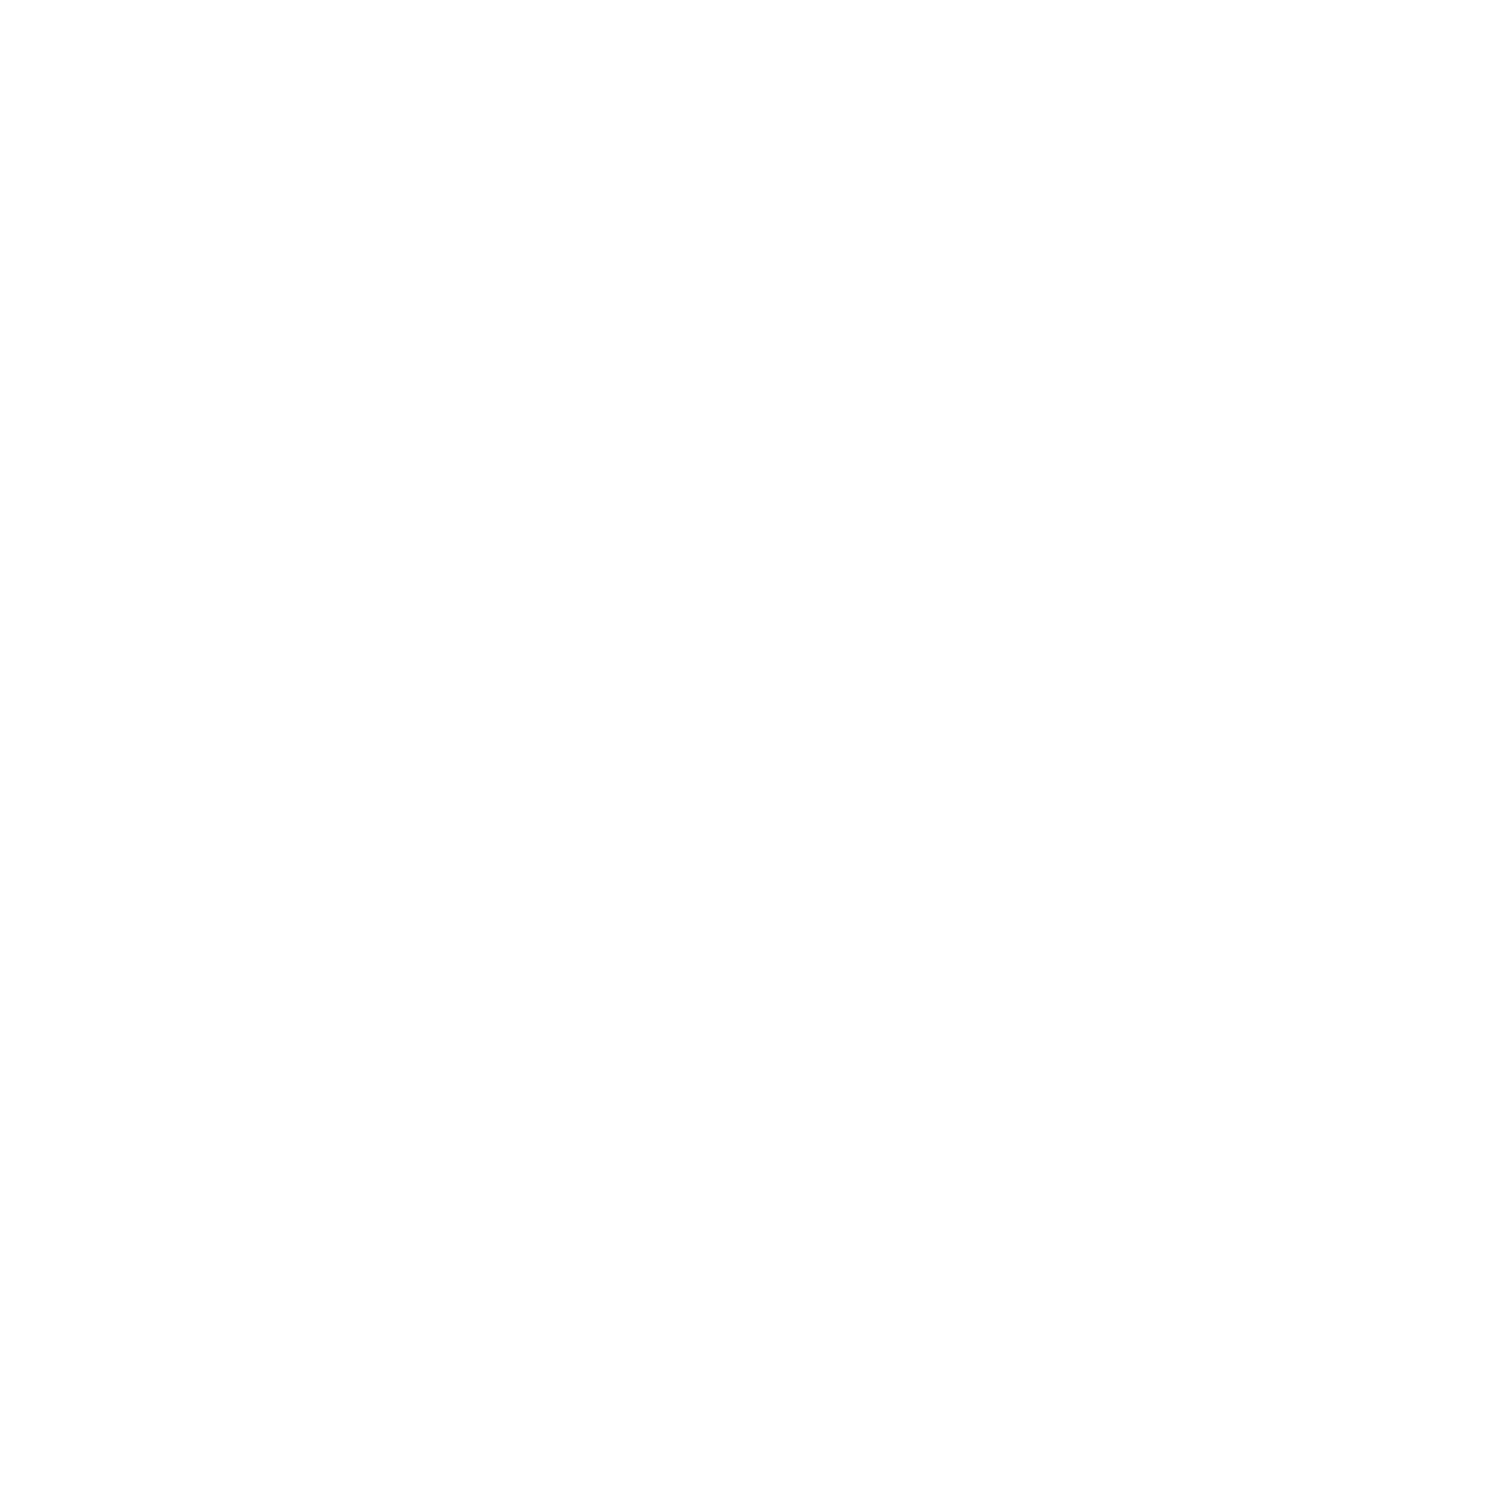 The Lakes of Williams Ranch